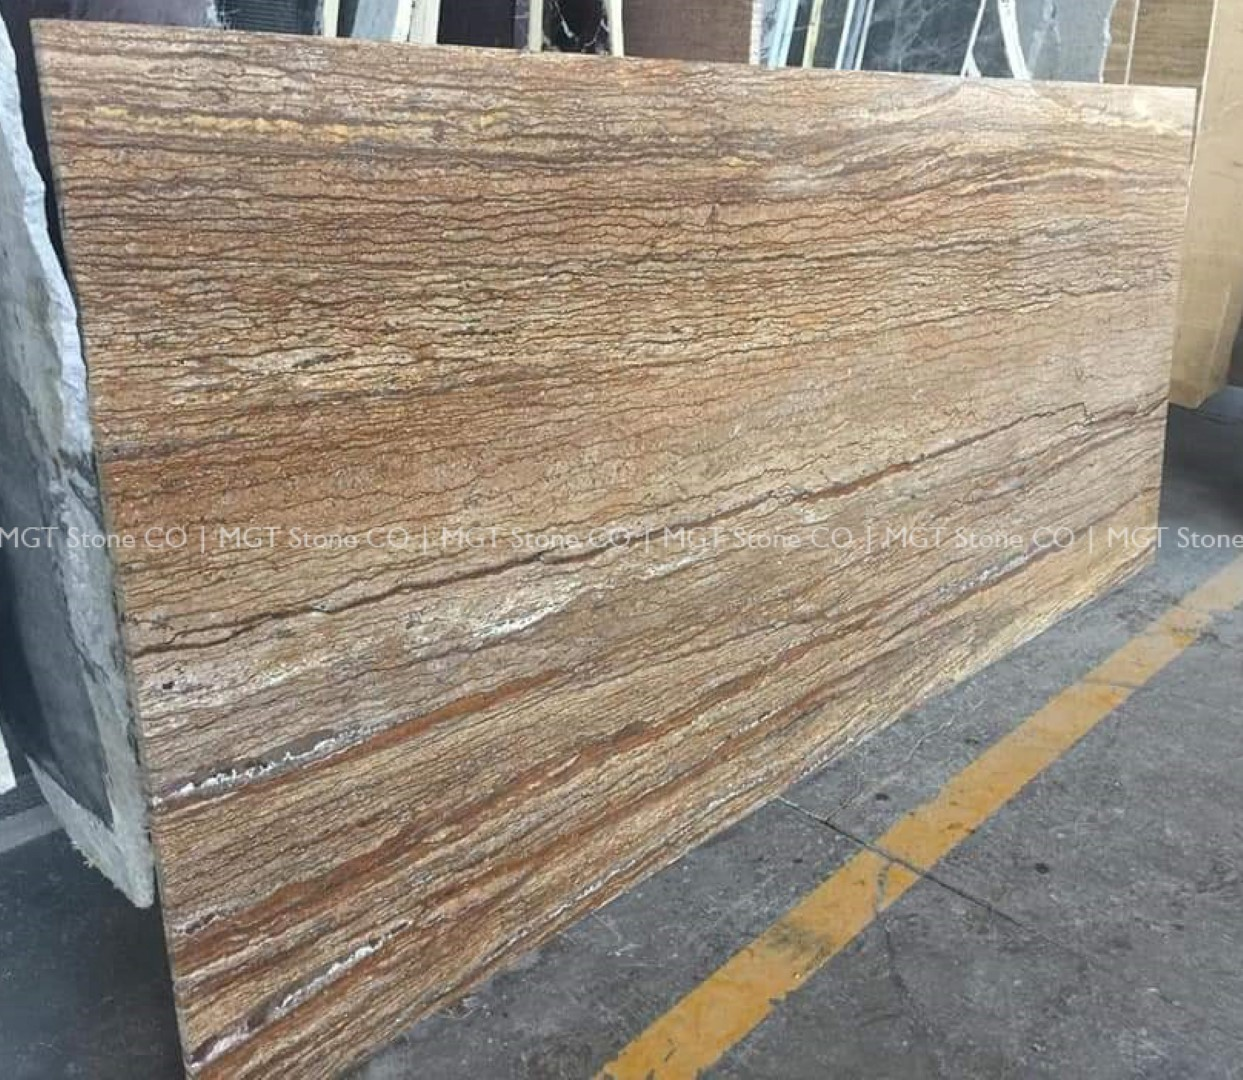 Walnut Travertine Slab Veincut